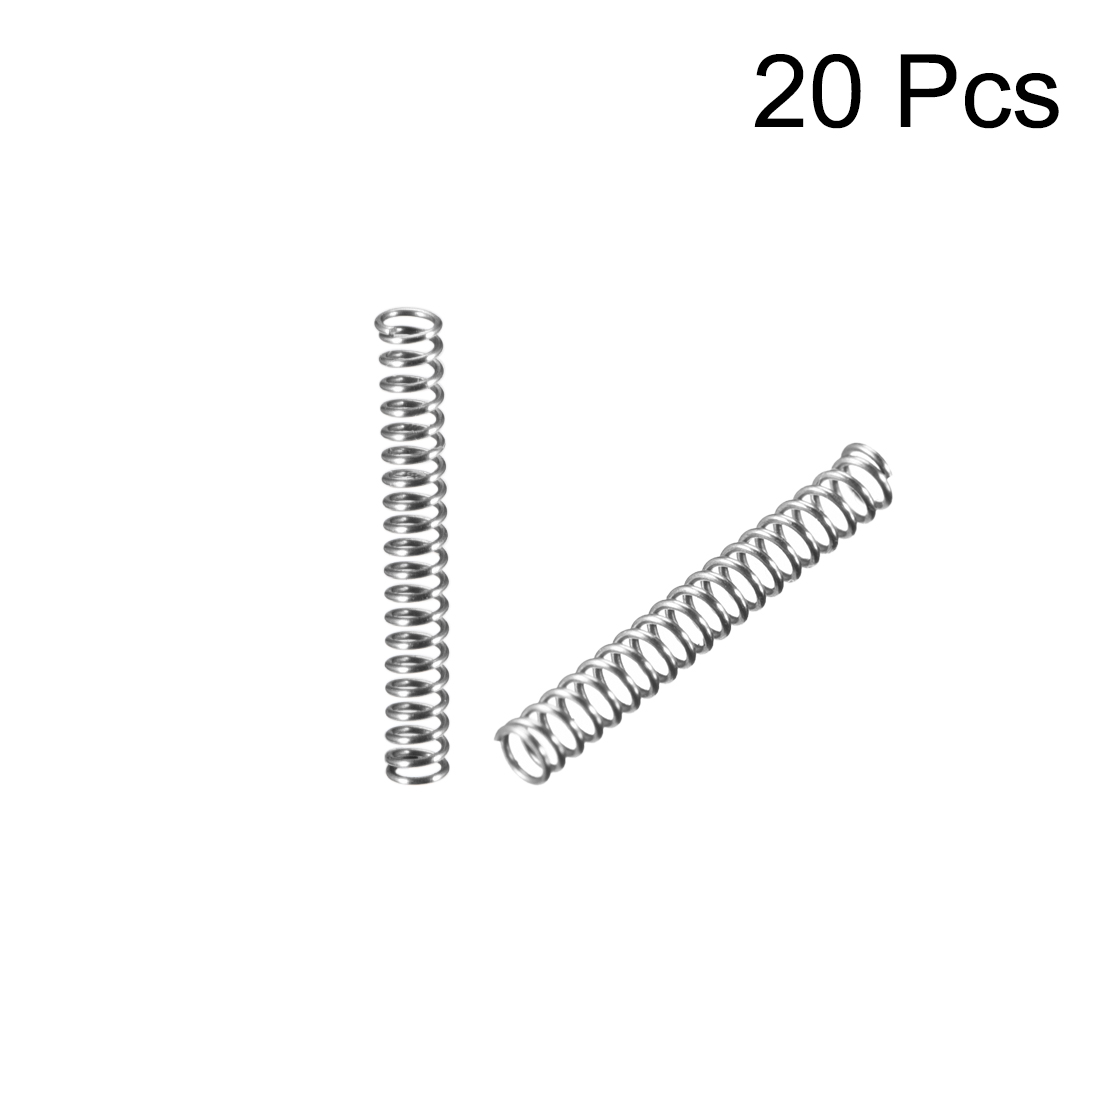 0.3x2x15mm Stainless Steel Coil Extended Compressed Spring 20Pcs - image 1 of 3